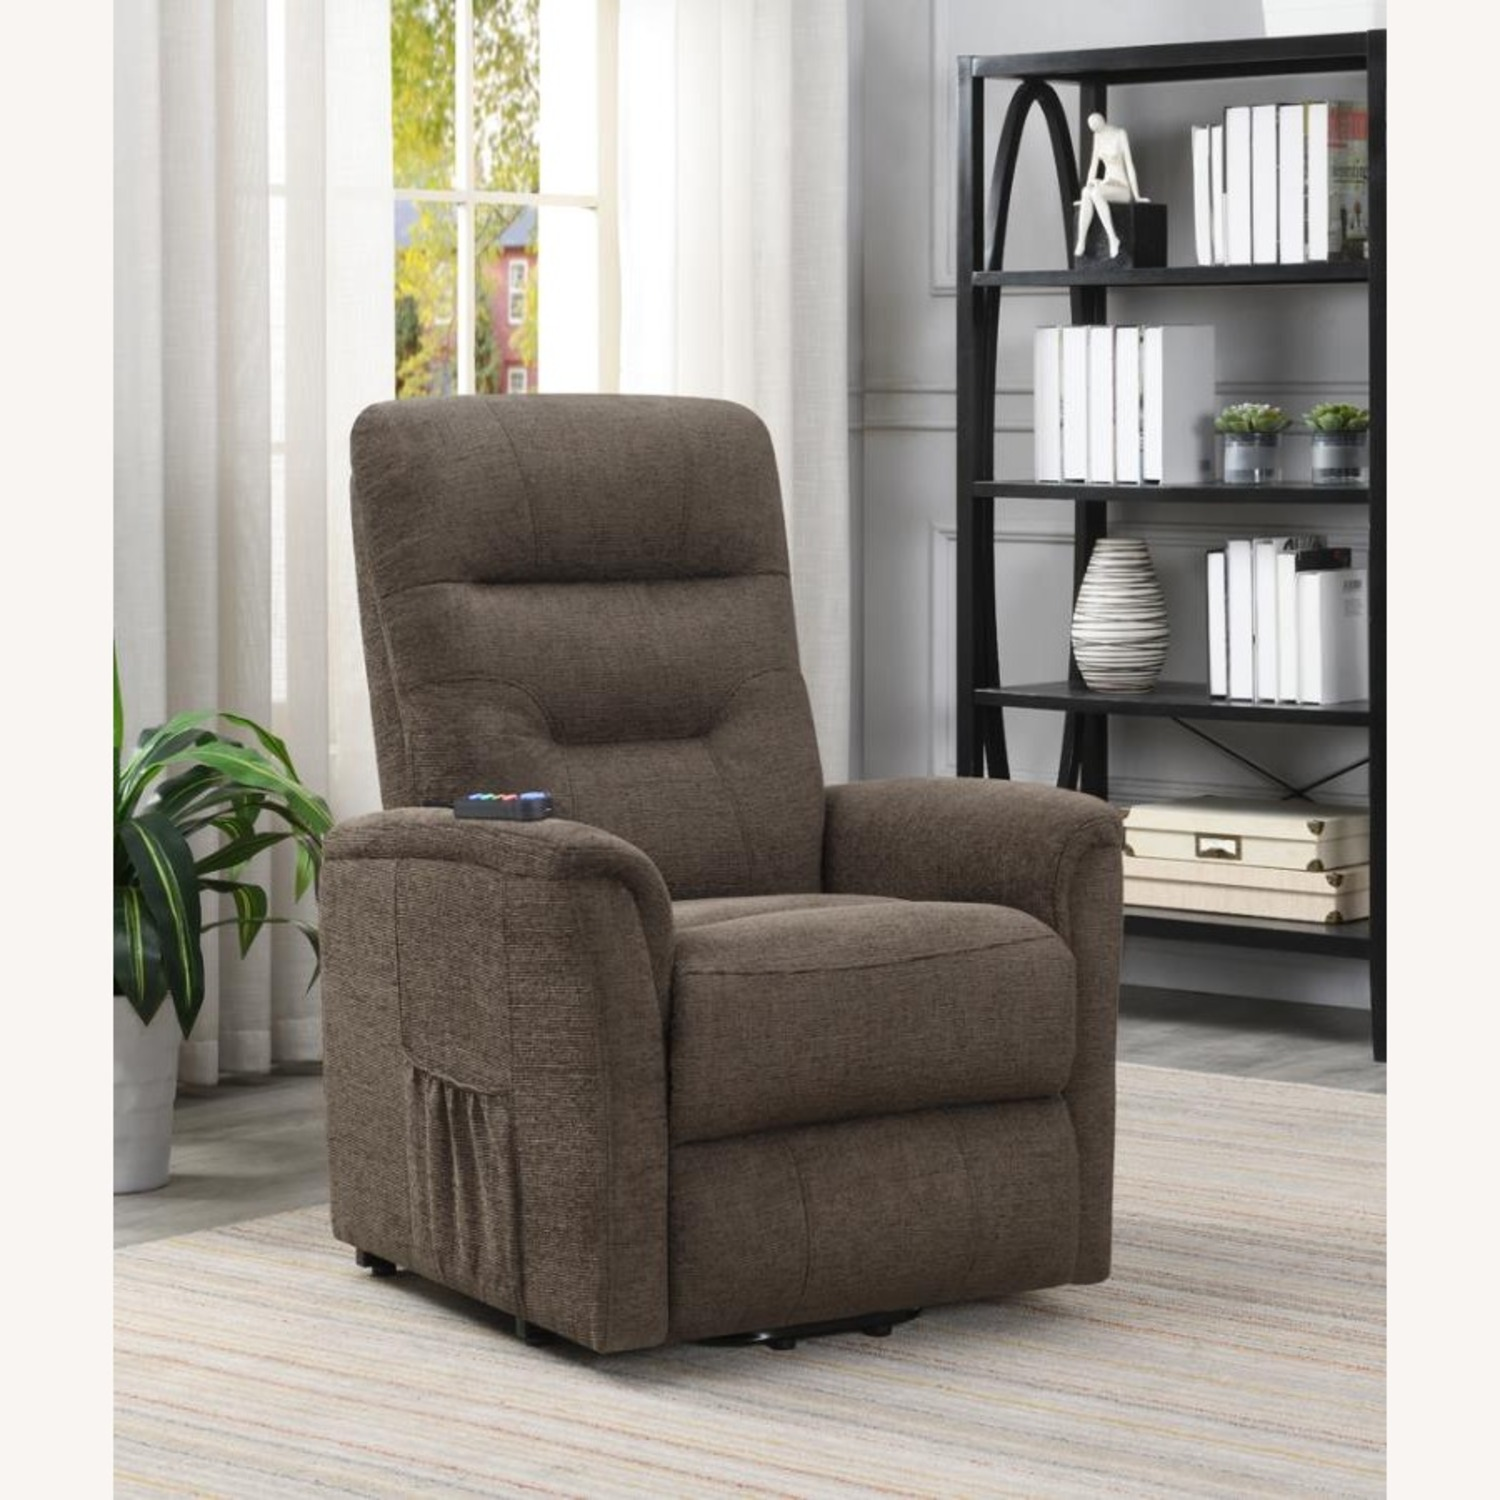 Power Lift Recliner Massage Chair In Brown Leather - image-3